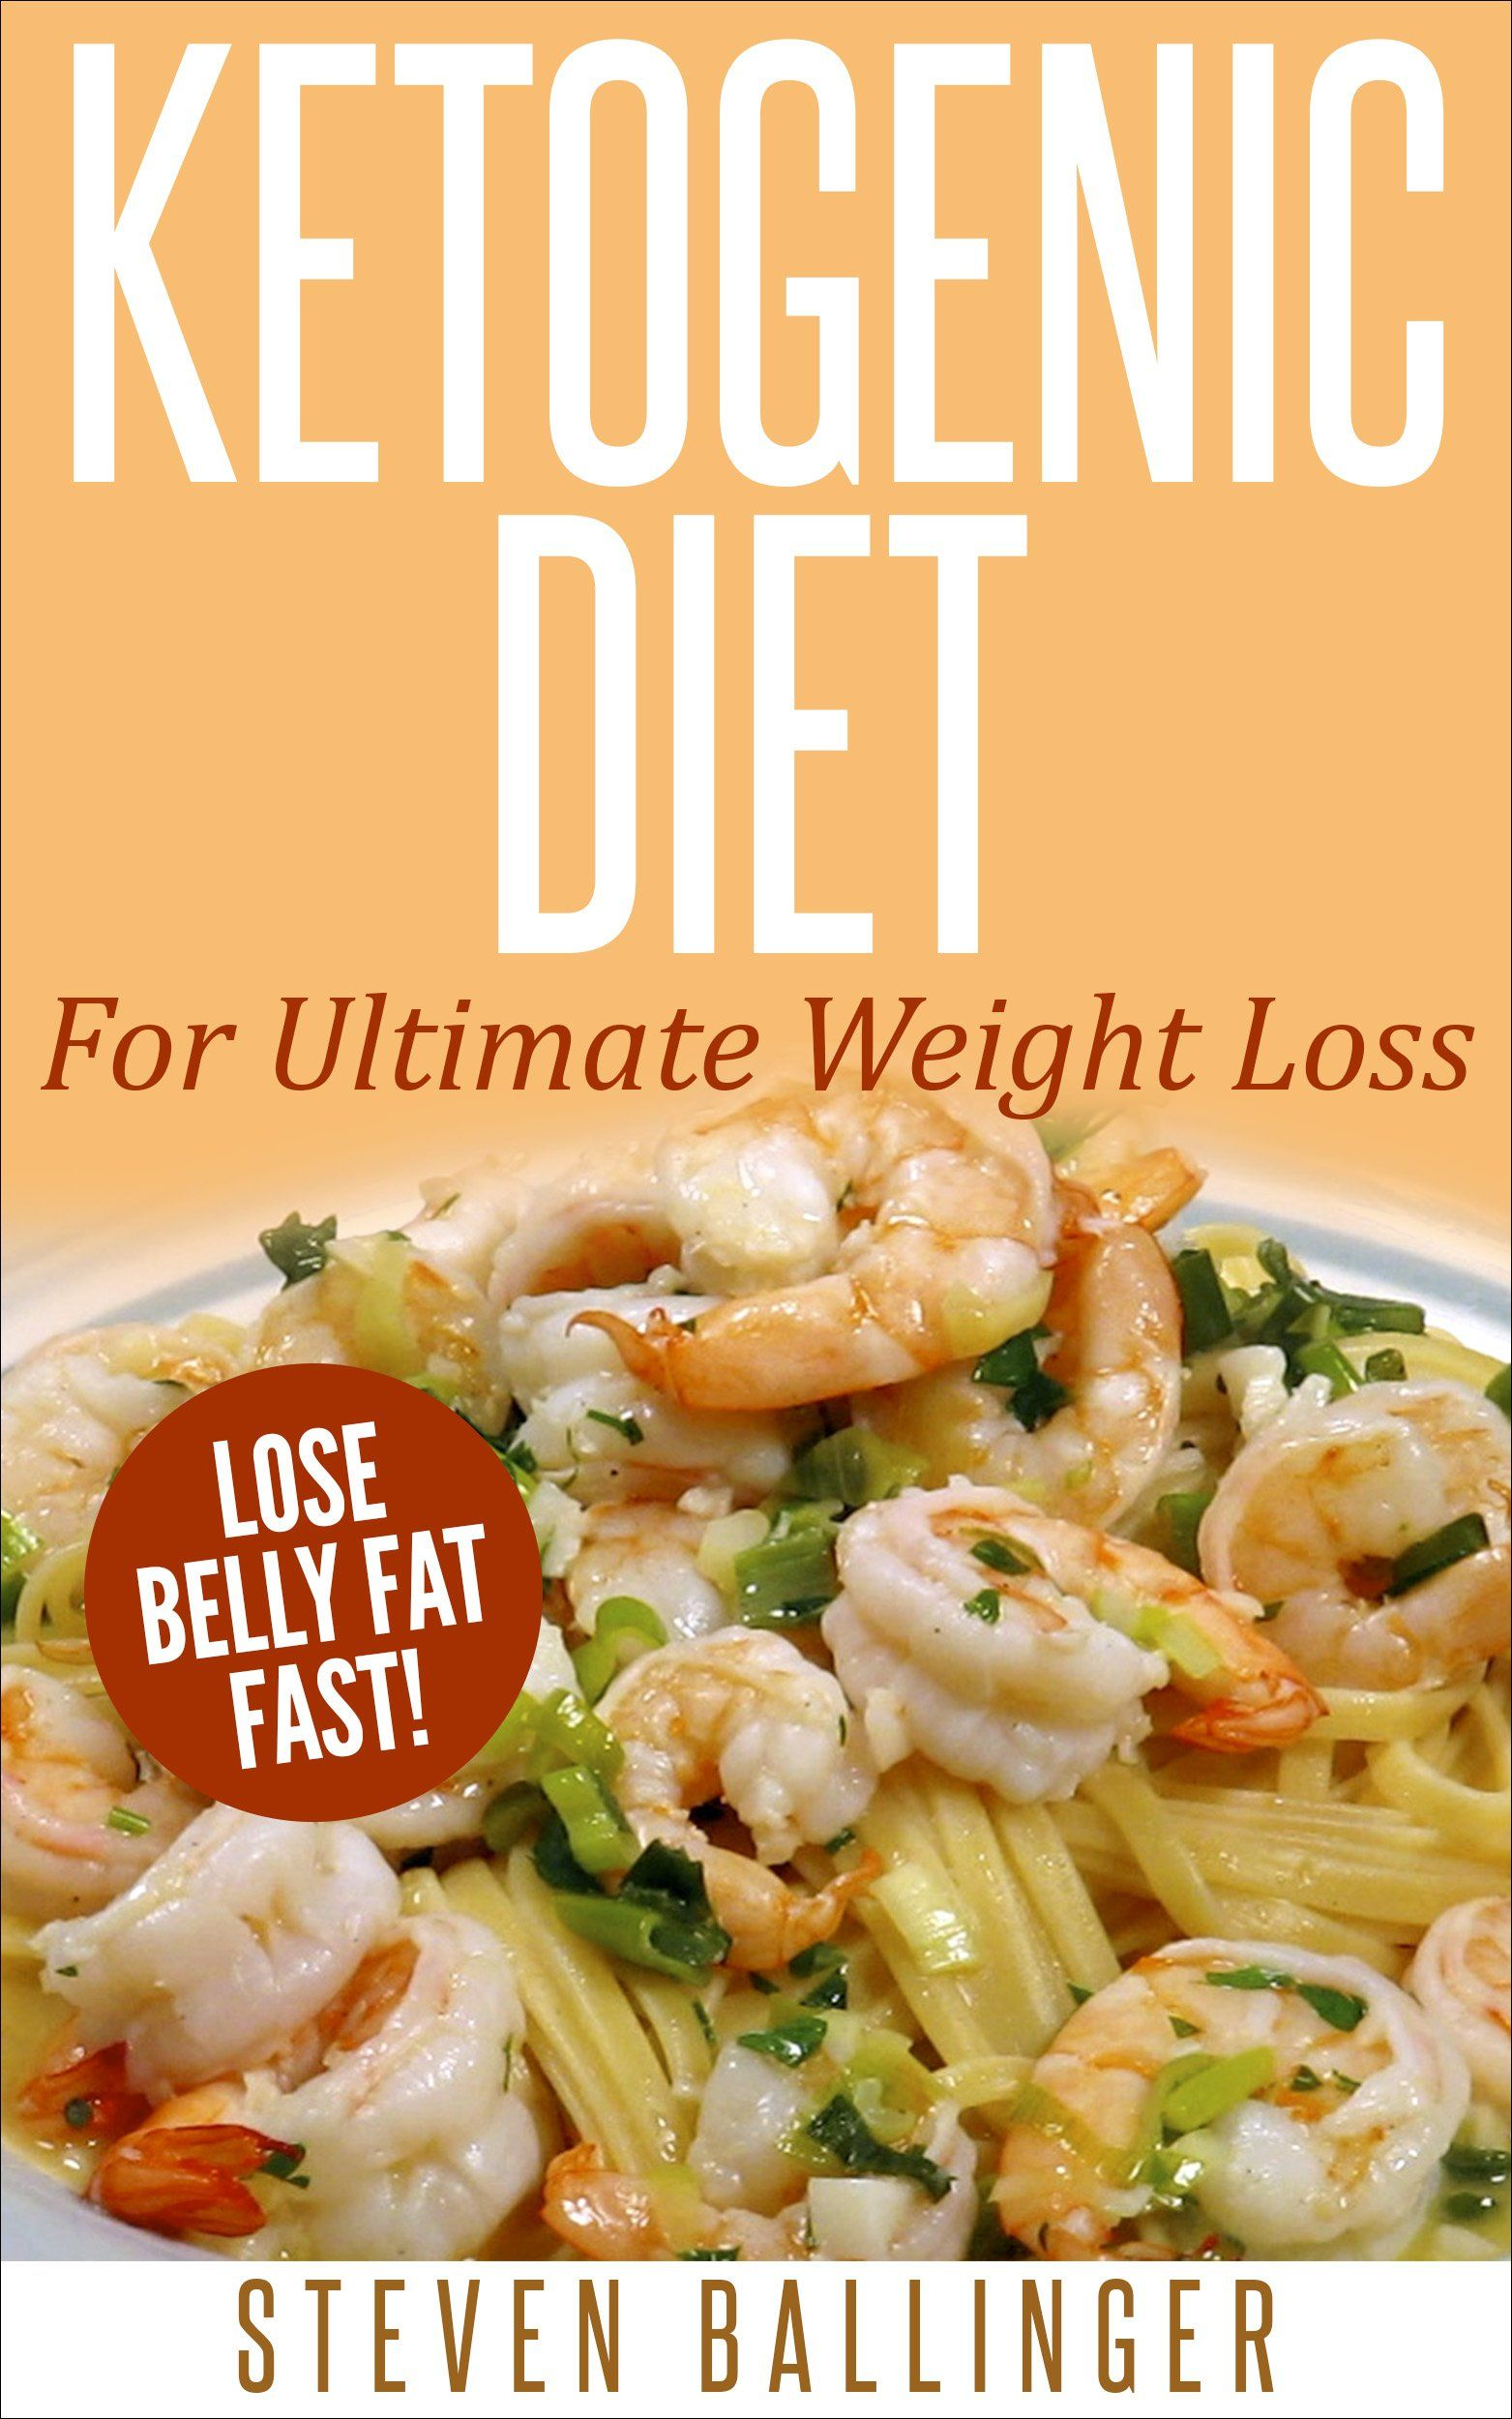 World best diet plan for weight loss photo 2